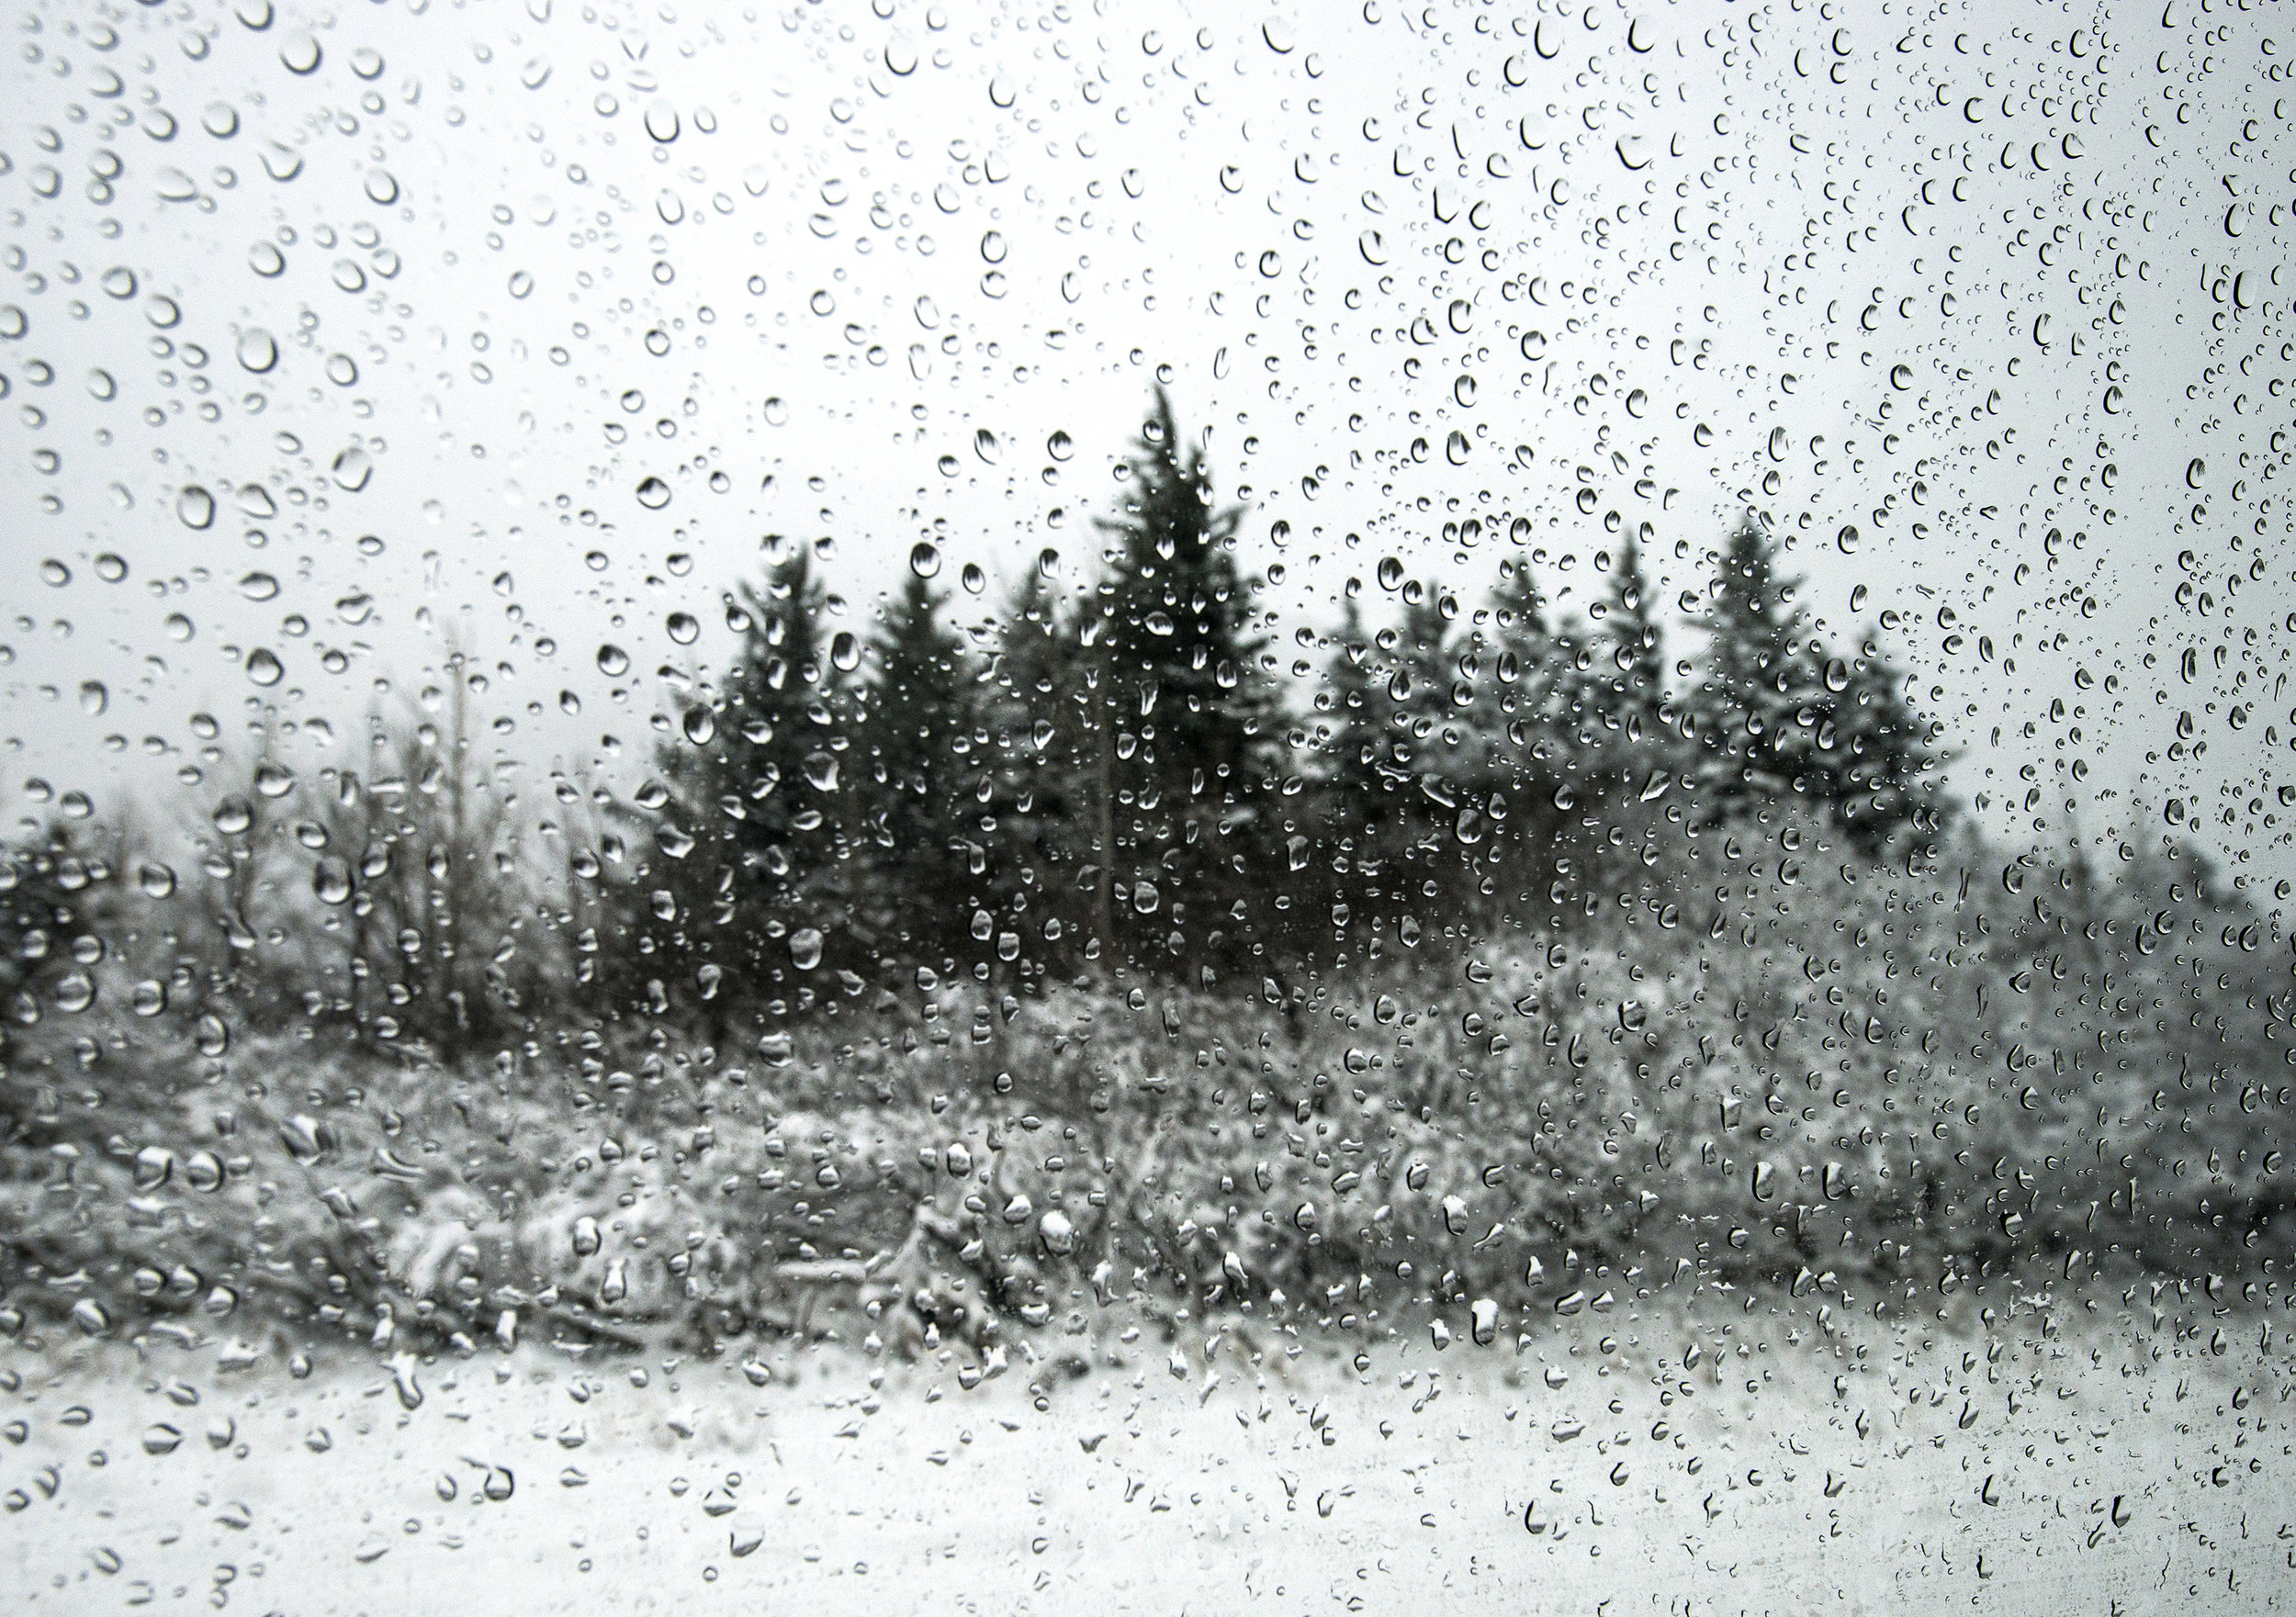 Snow-covered ground through a rain covered windshield in Alaska.